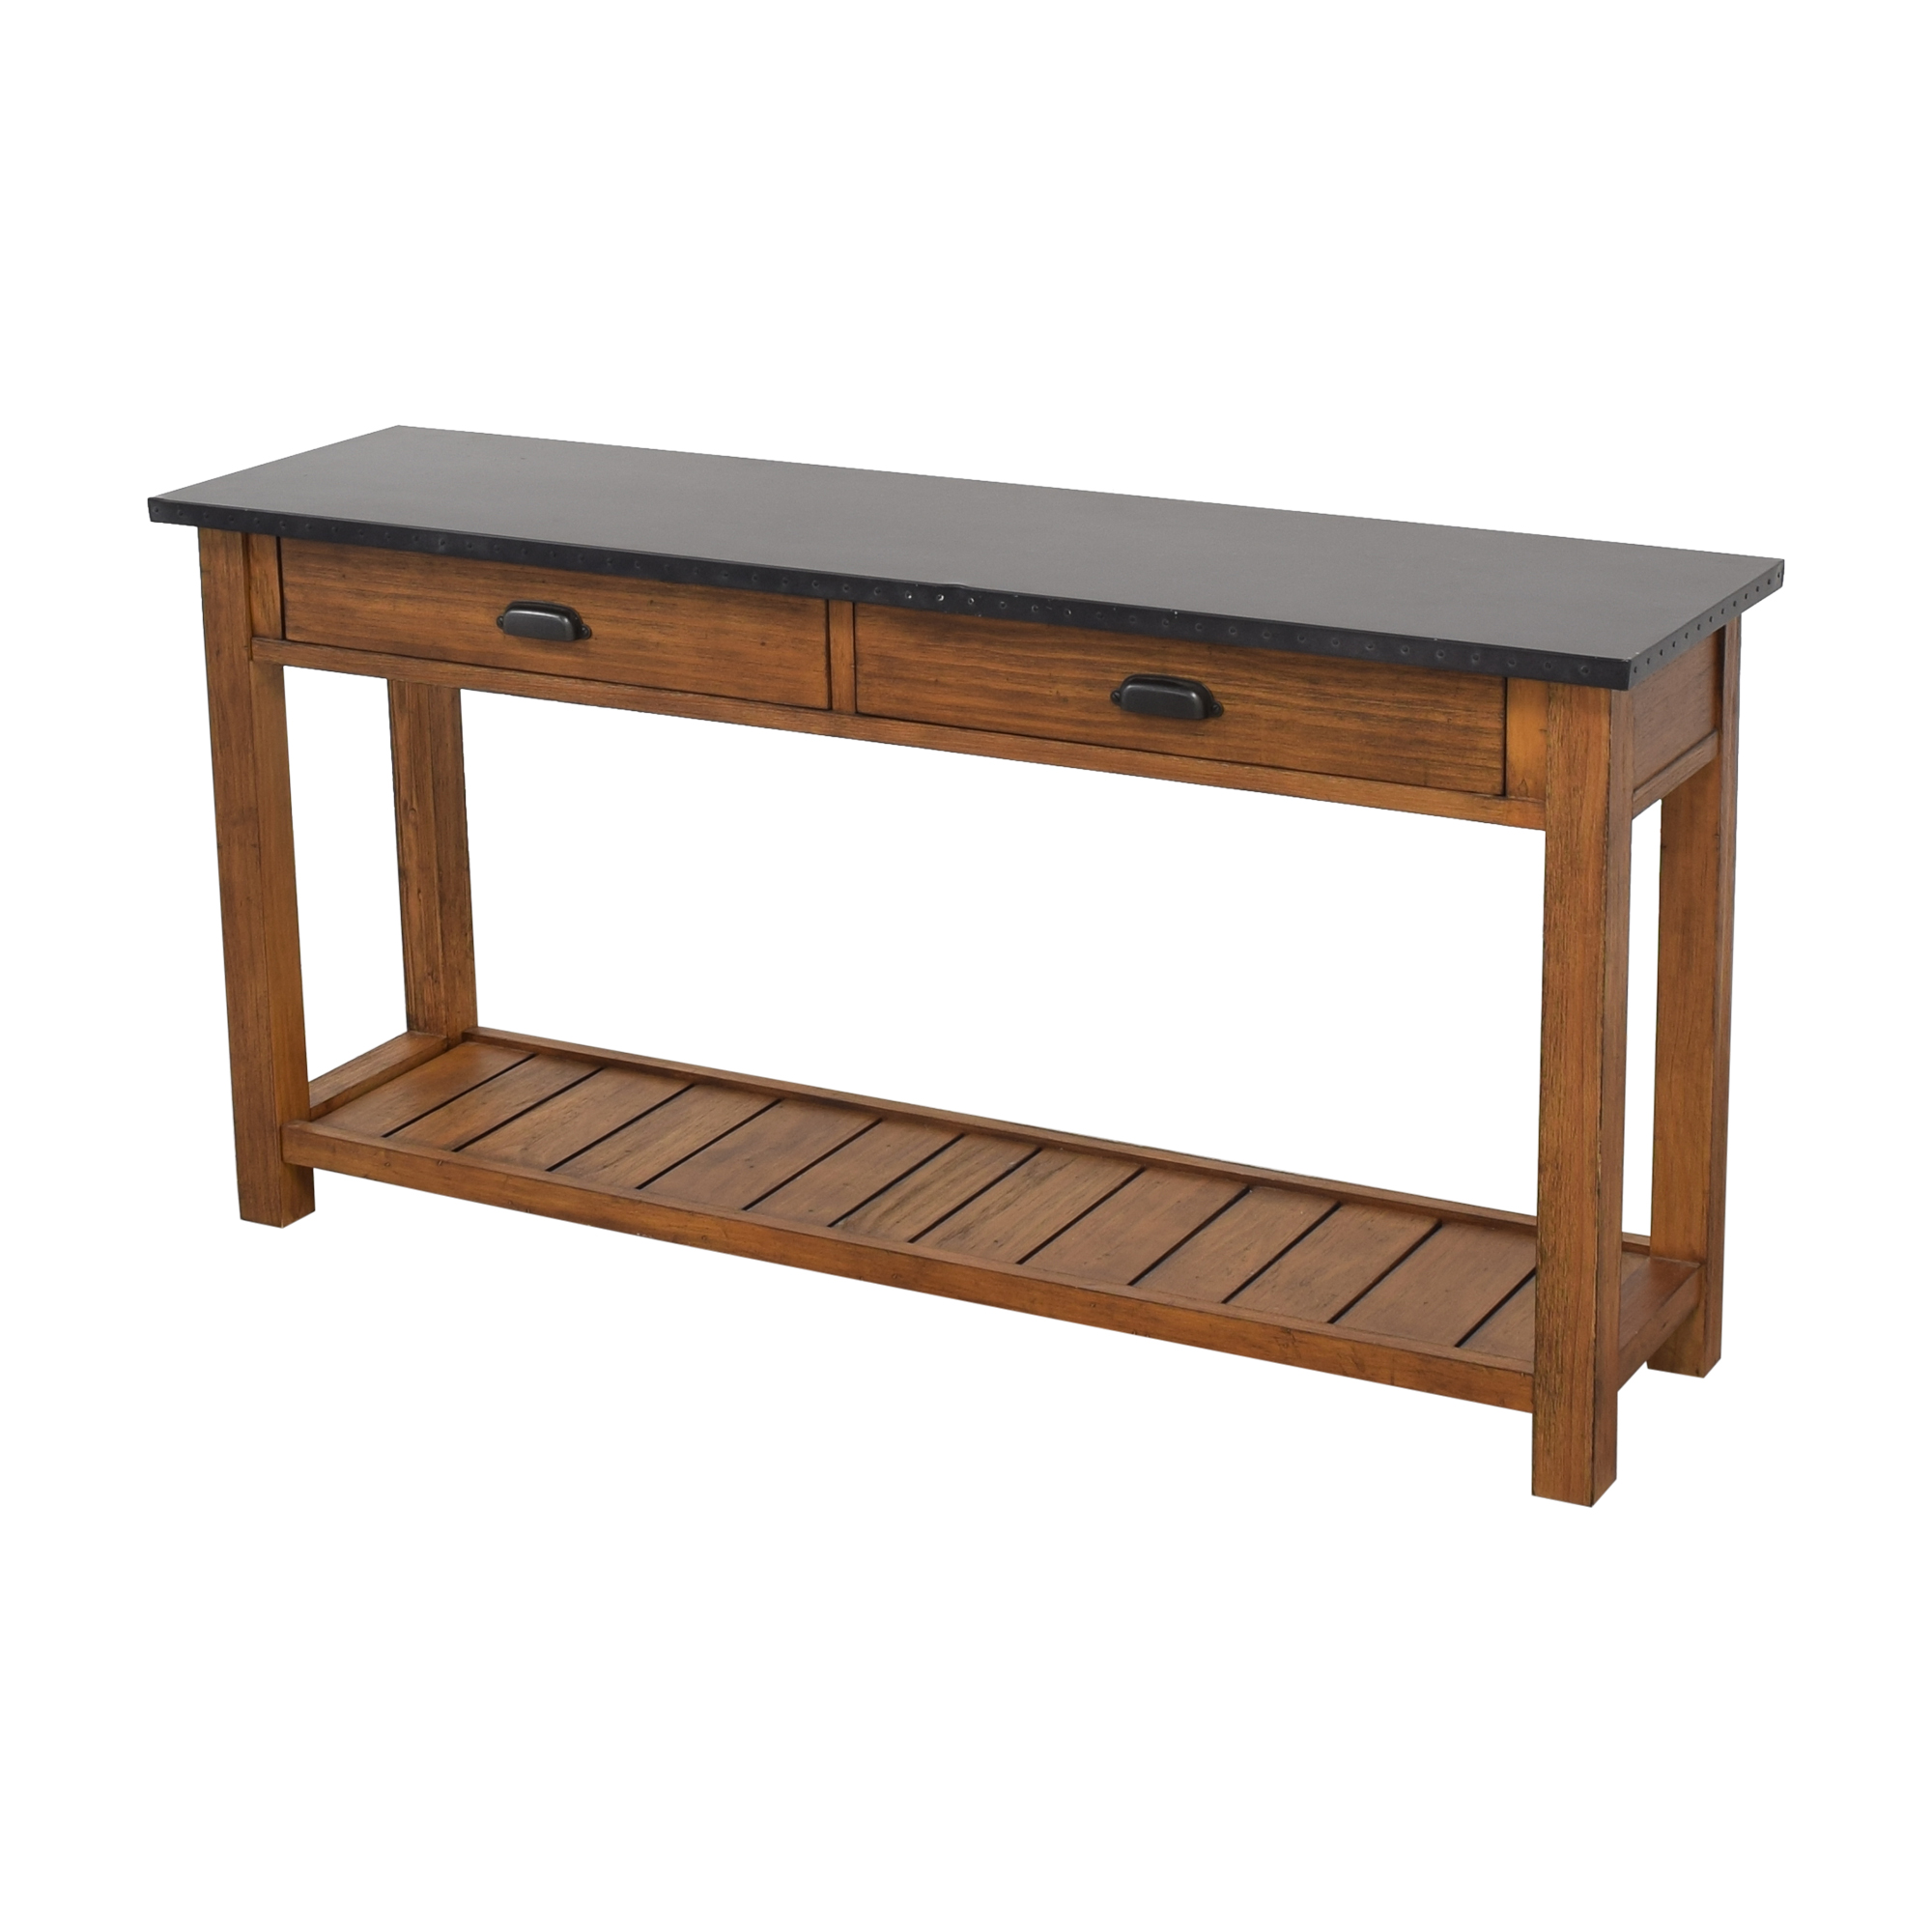 Pottery Barn Pottery Barn Console Table discount